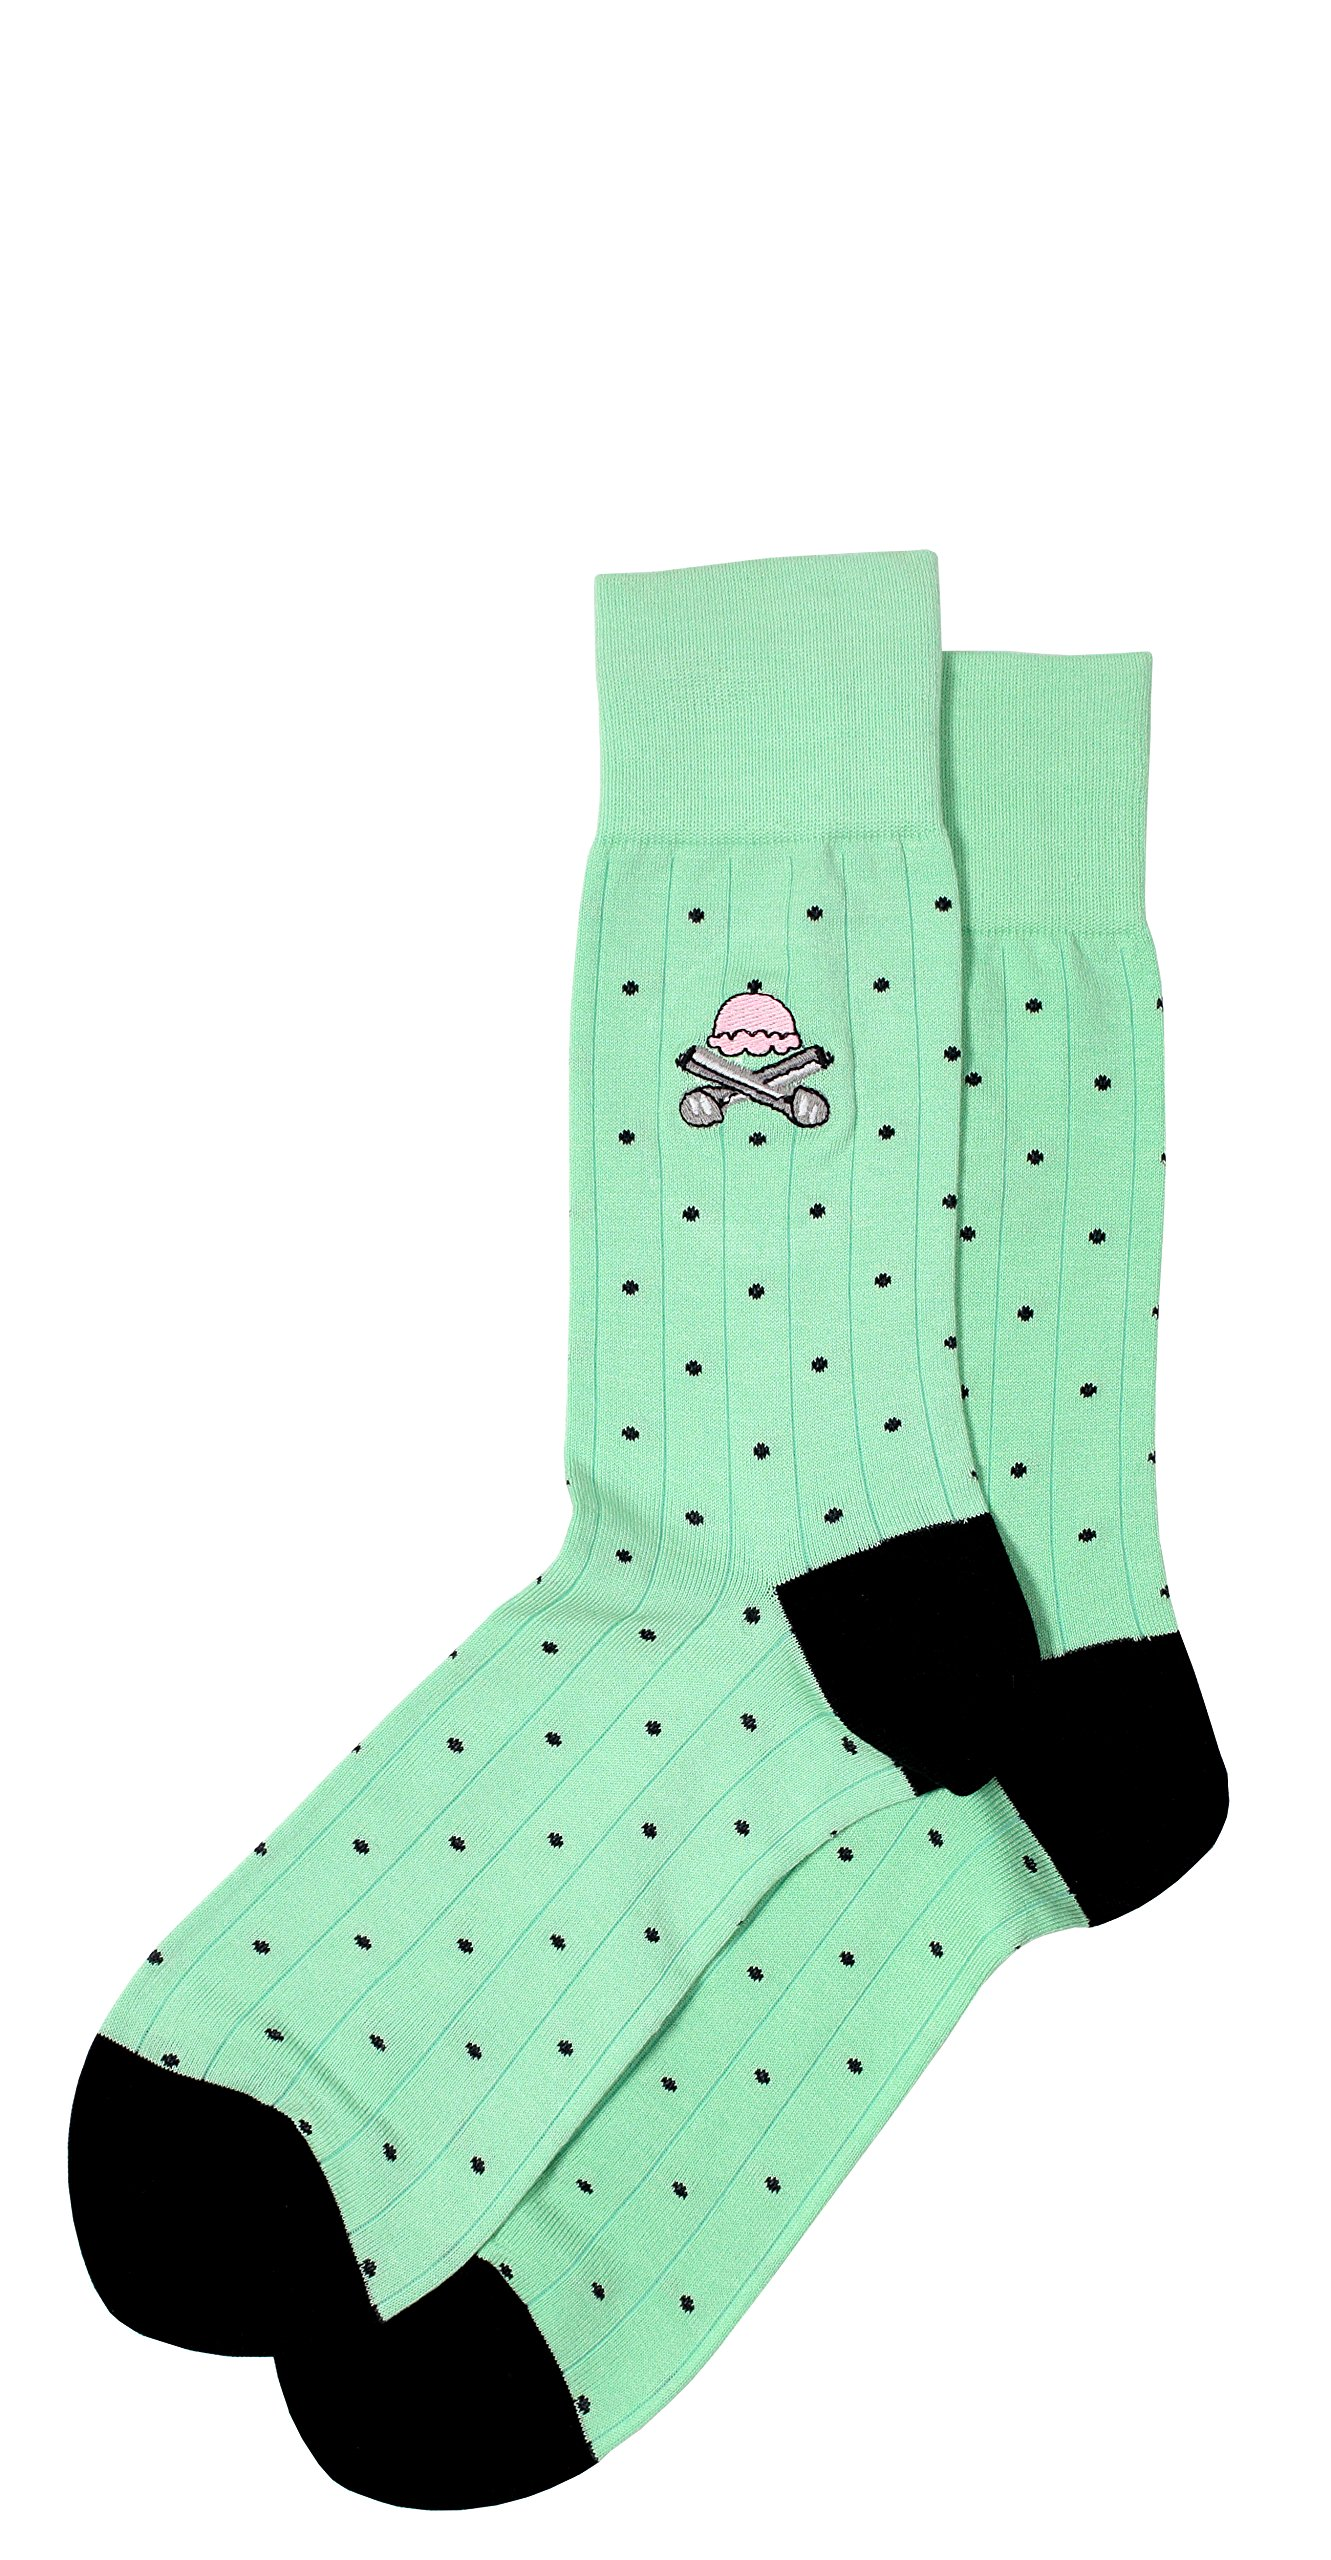 Colorful Mint Men's Pima Cotton Dress Socks with Embroidery, Mid Calf